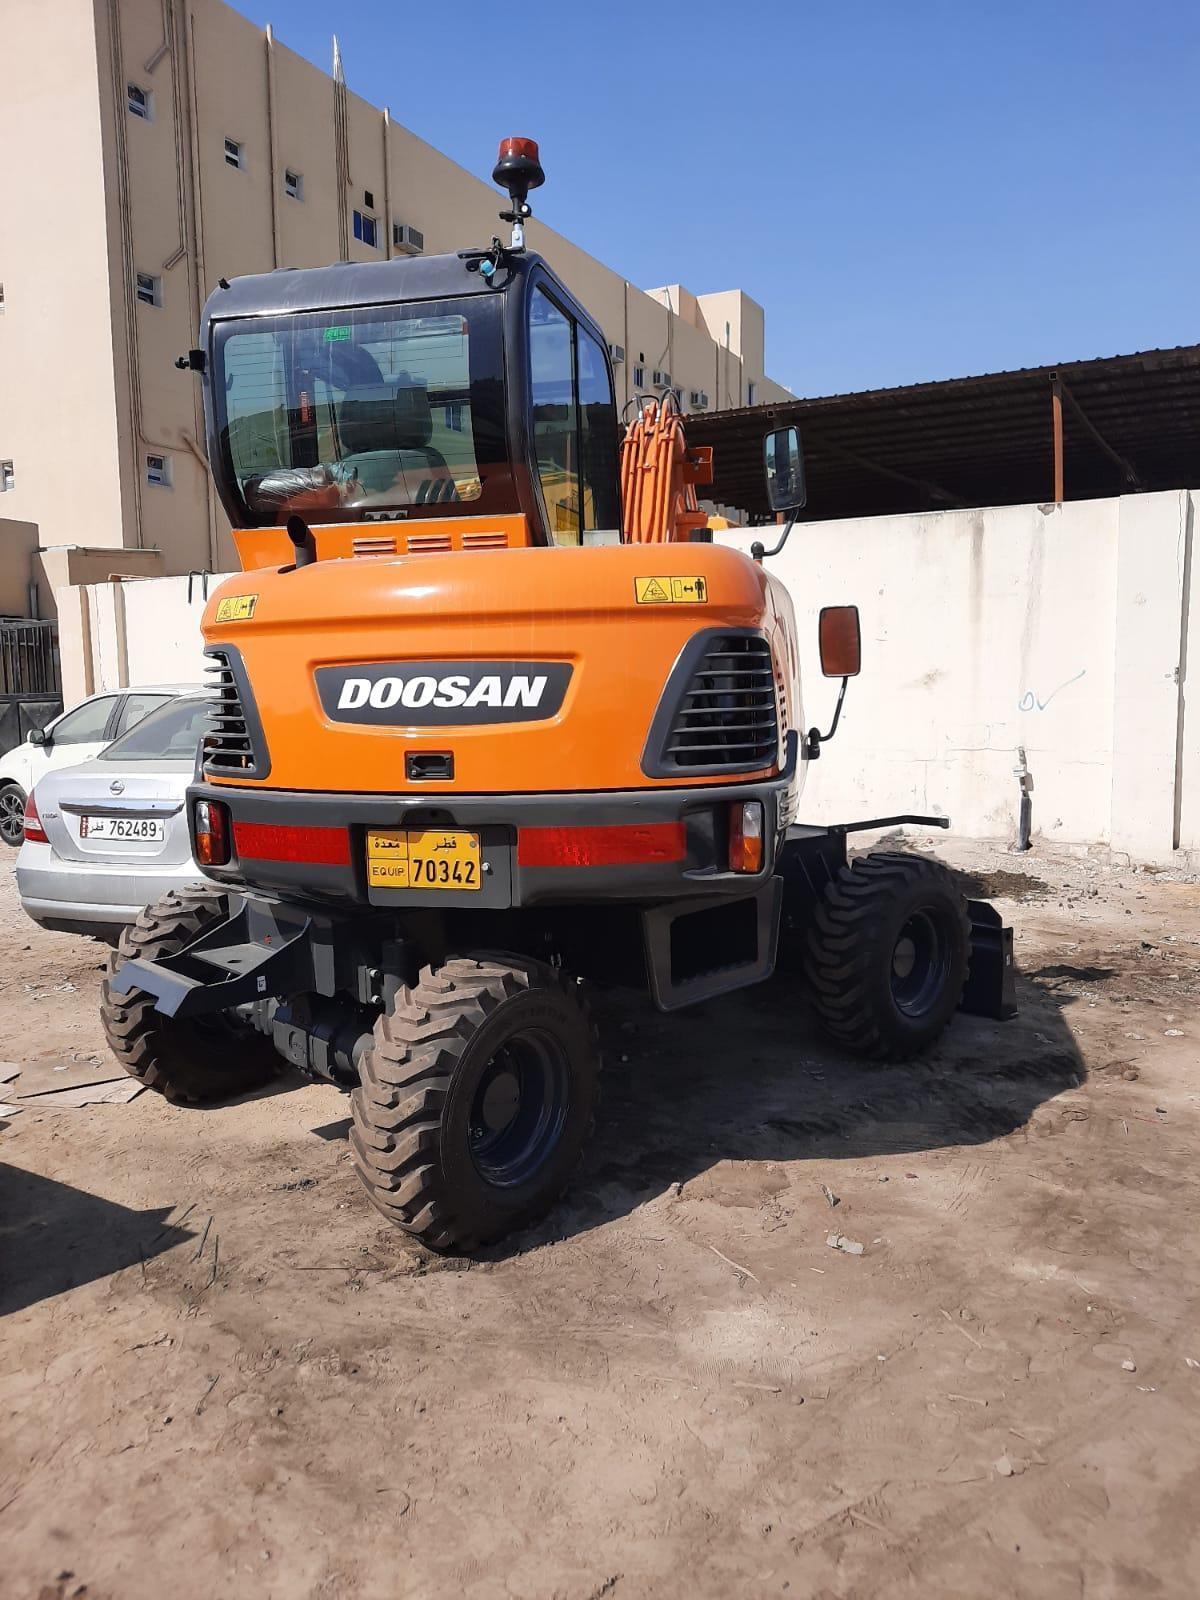 Whwel  Excavator for rent in qatar